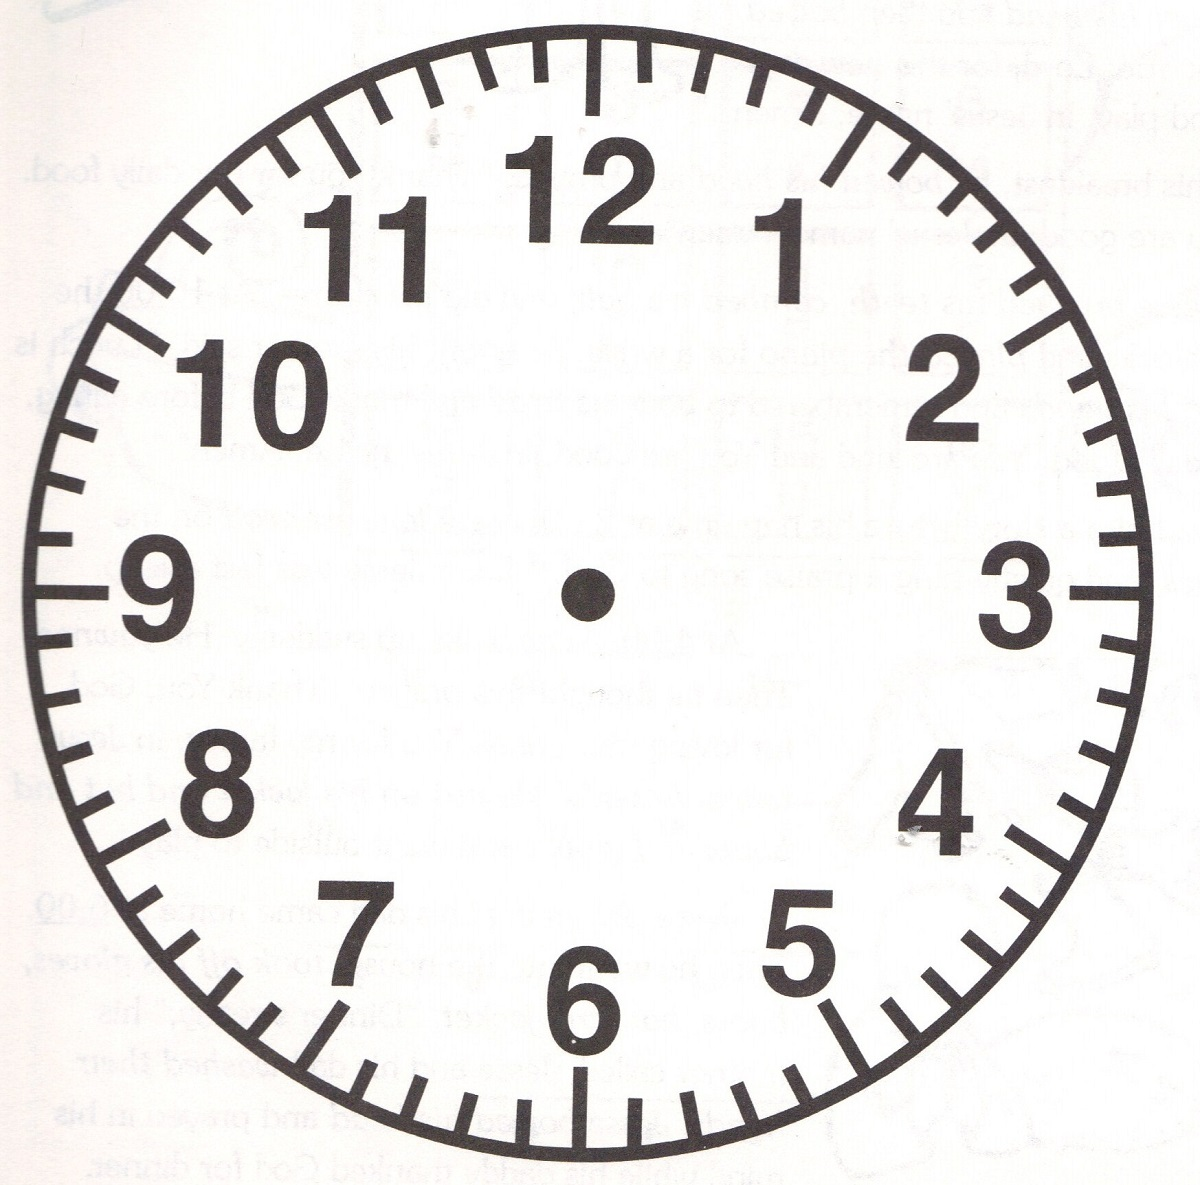 Clock Face Image Simple Learning Printable